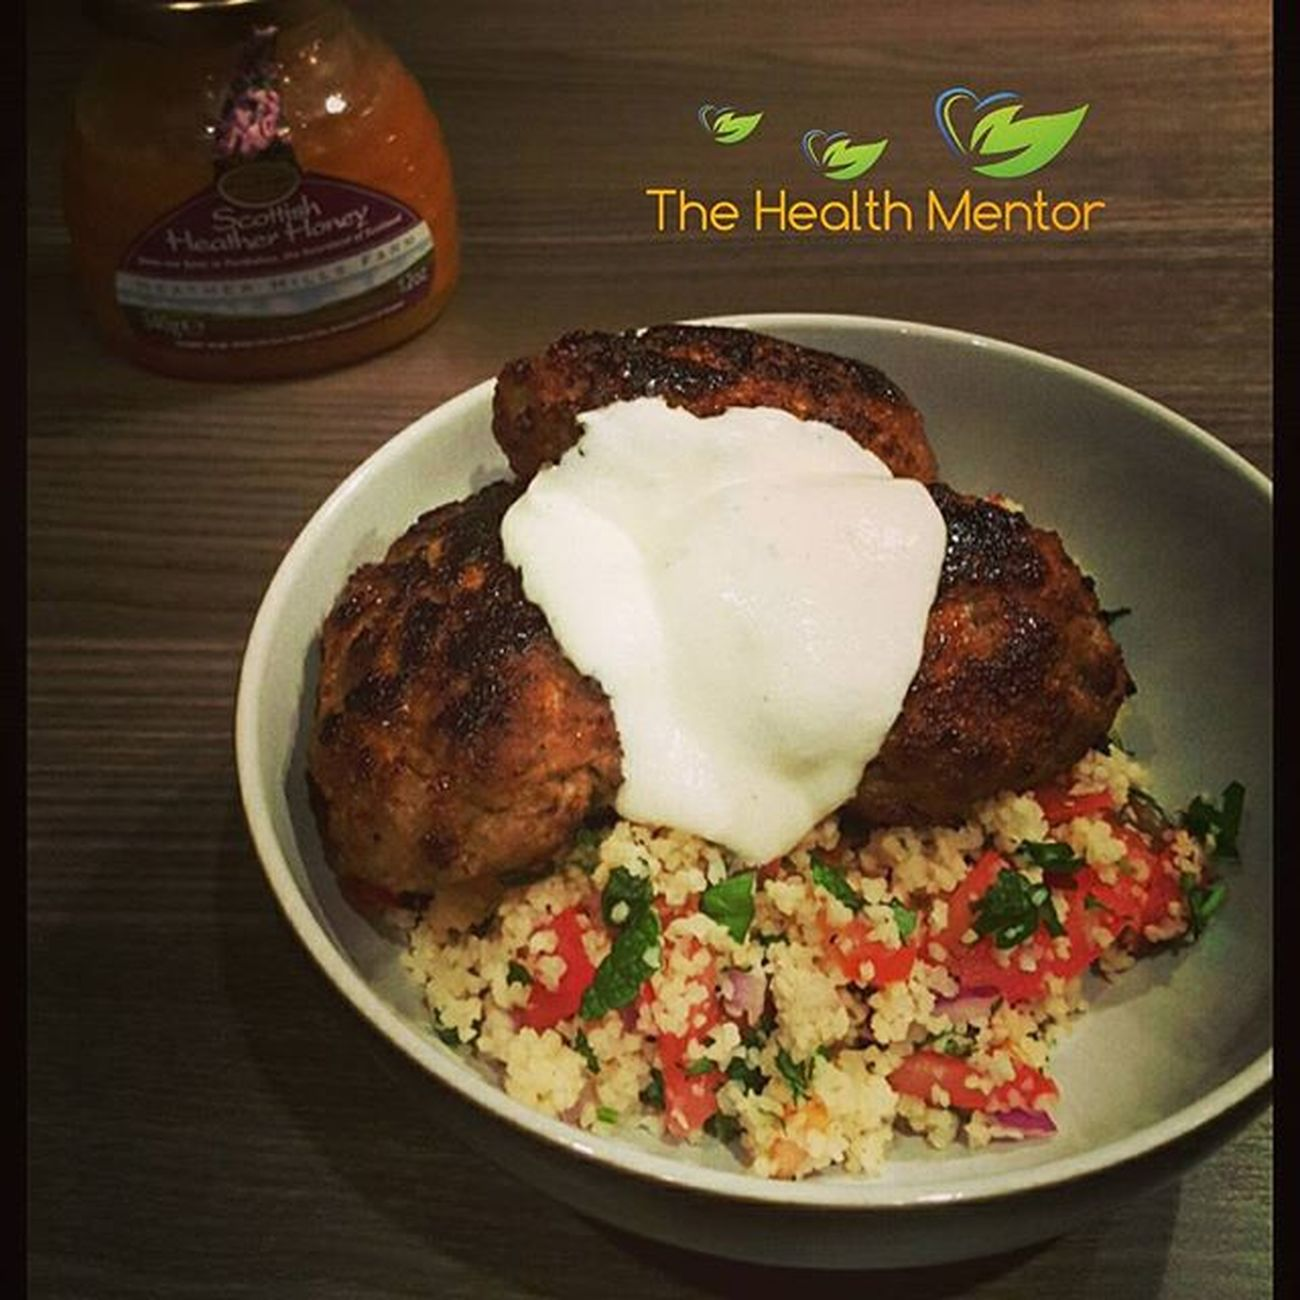 Lamb Kofta with Healther Scottish Honey. Healthy recipes will be available soon on my website. You can get the honey from www.heatherhills.co.uk Next week, I'm going to make a Spicy Lamb Kofta. Can't wait... keep a l👀k out... Scottishheatherhoney Lambkofta Healthy Healthychoices Happyandhealthy Bulgarwheat Yummy Homemade Homemadefood Delicious Healthyfood Healtherhillsfarm